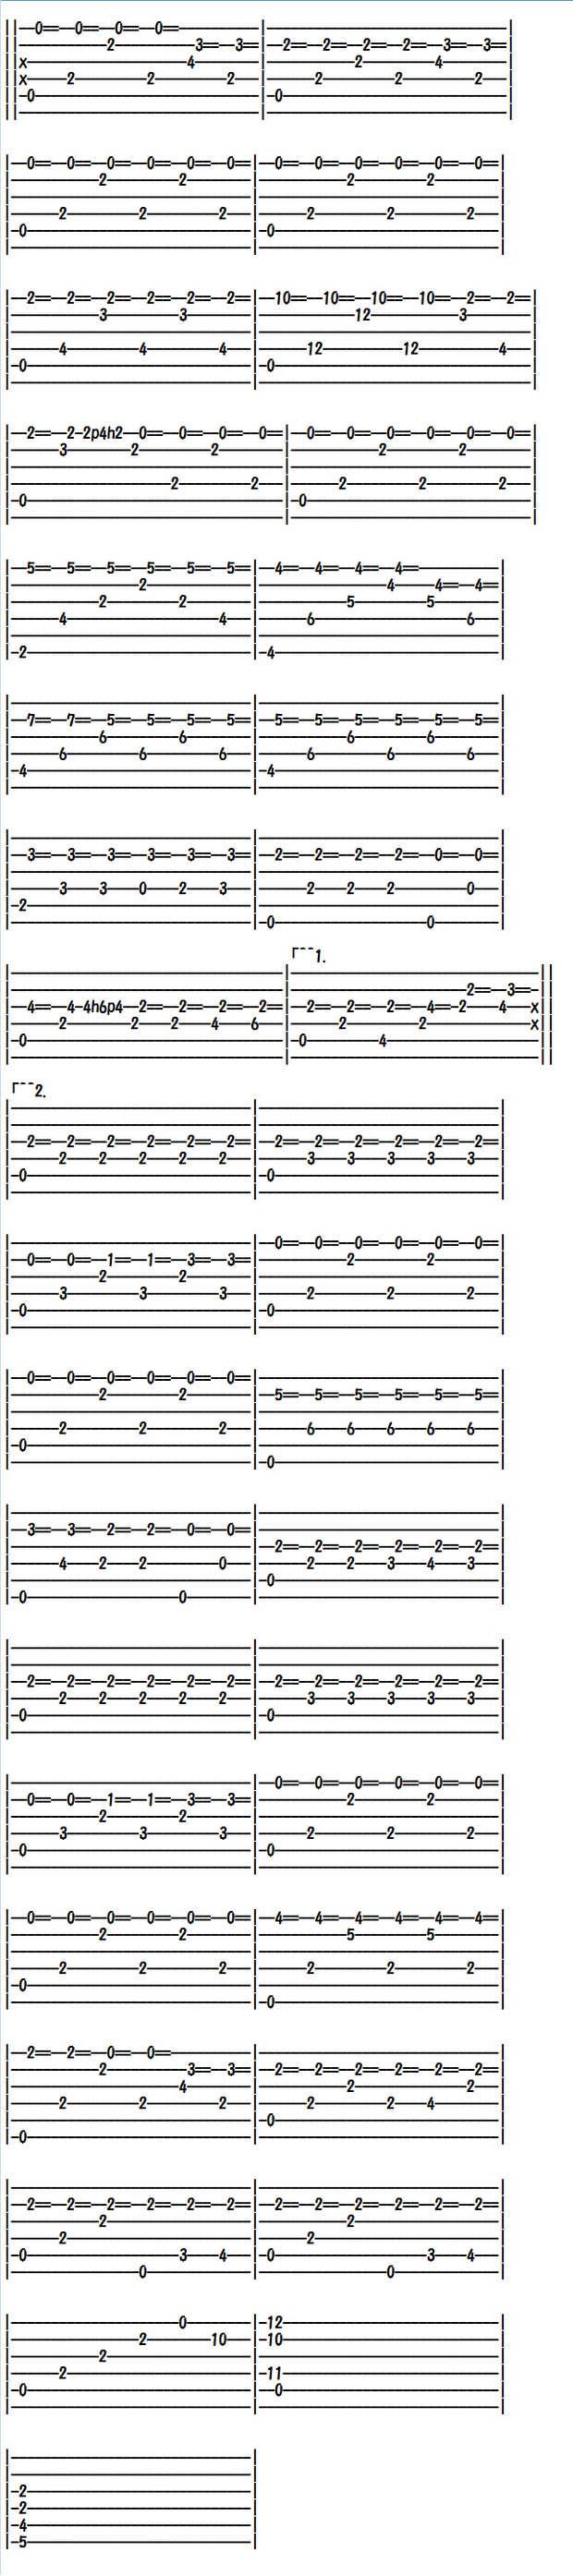 Advanced Classical Guitar Sheet Music (Tabs), Recuerdos de la Alhambra 2/2